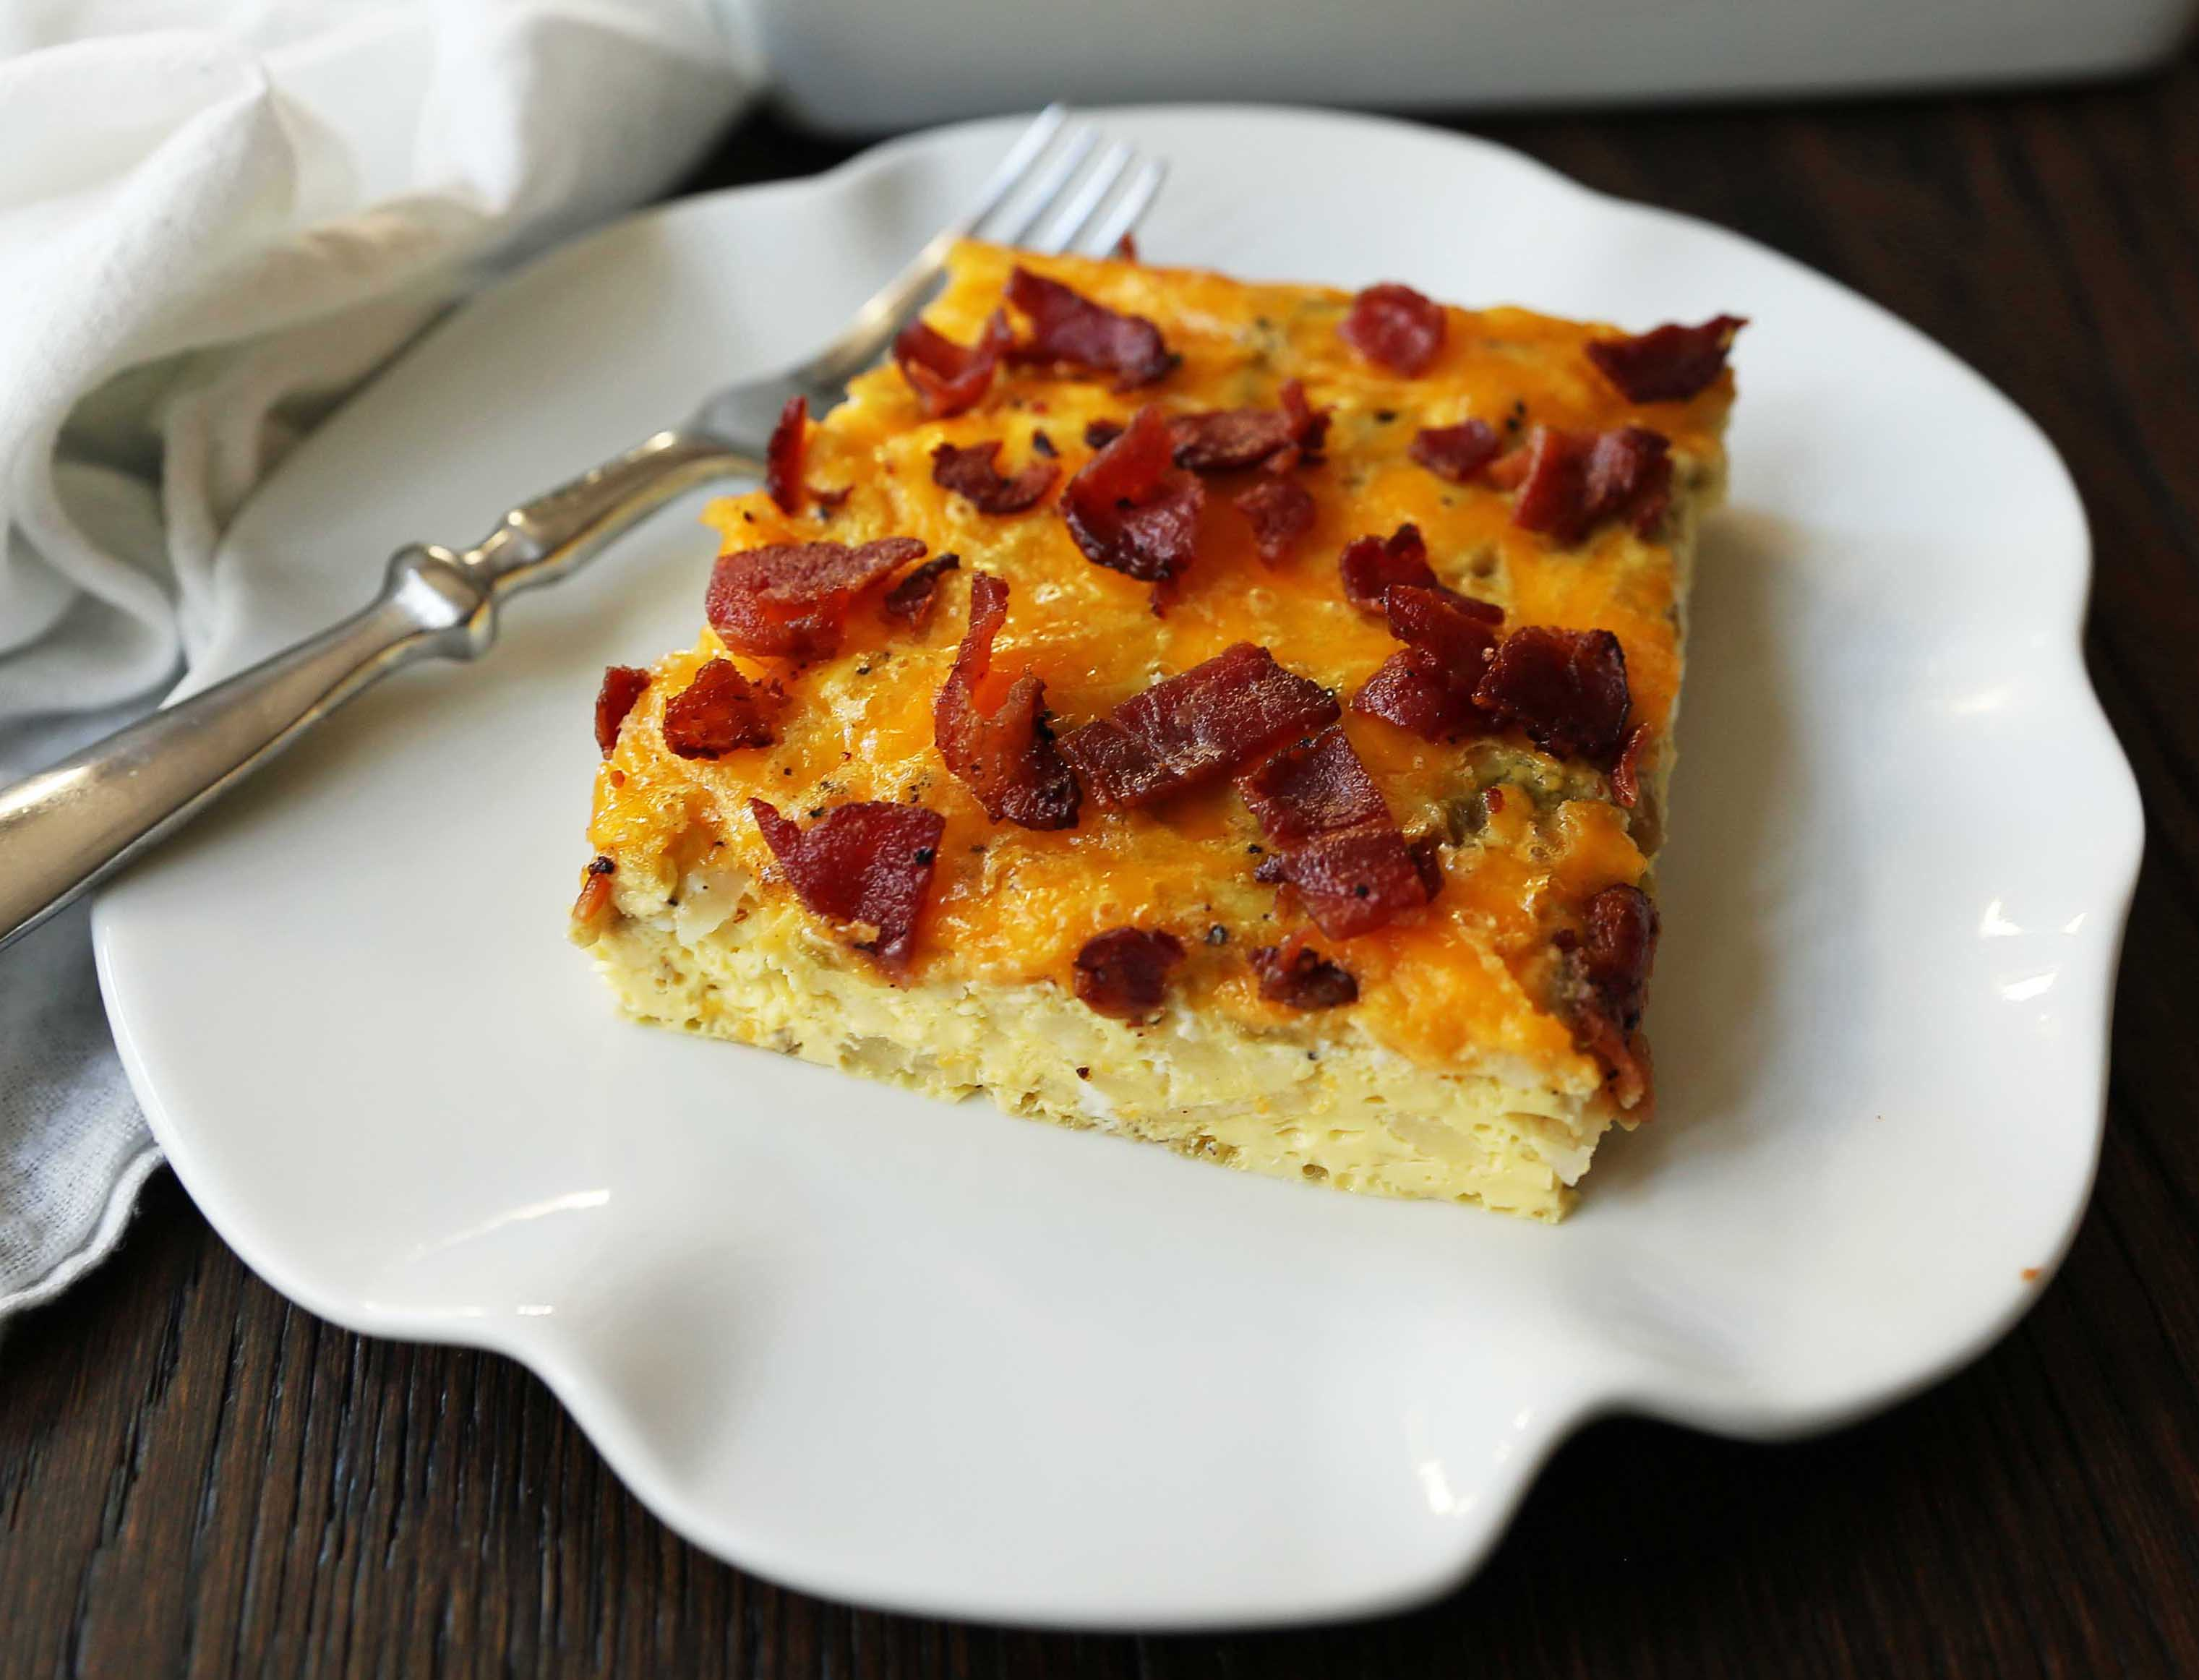 Bacon Egg and Cheese Casserole. An easy breakfast casserole recipe. Green Chili Bacon Cheese Egg Breakfast Souffle. www.modernhoney.com #breakfast #eggs #eggdish #eggcasserole #breakfastcasserole #christmas #christmasbreakfast #christmascasserole